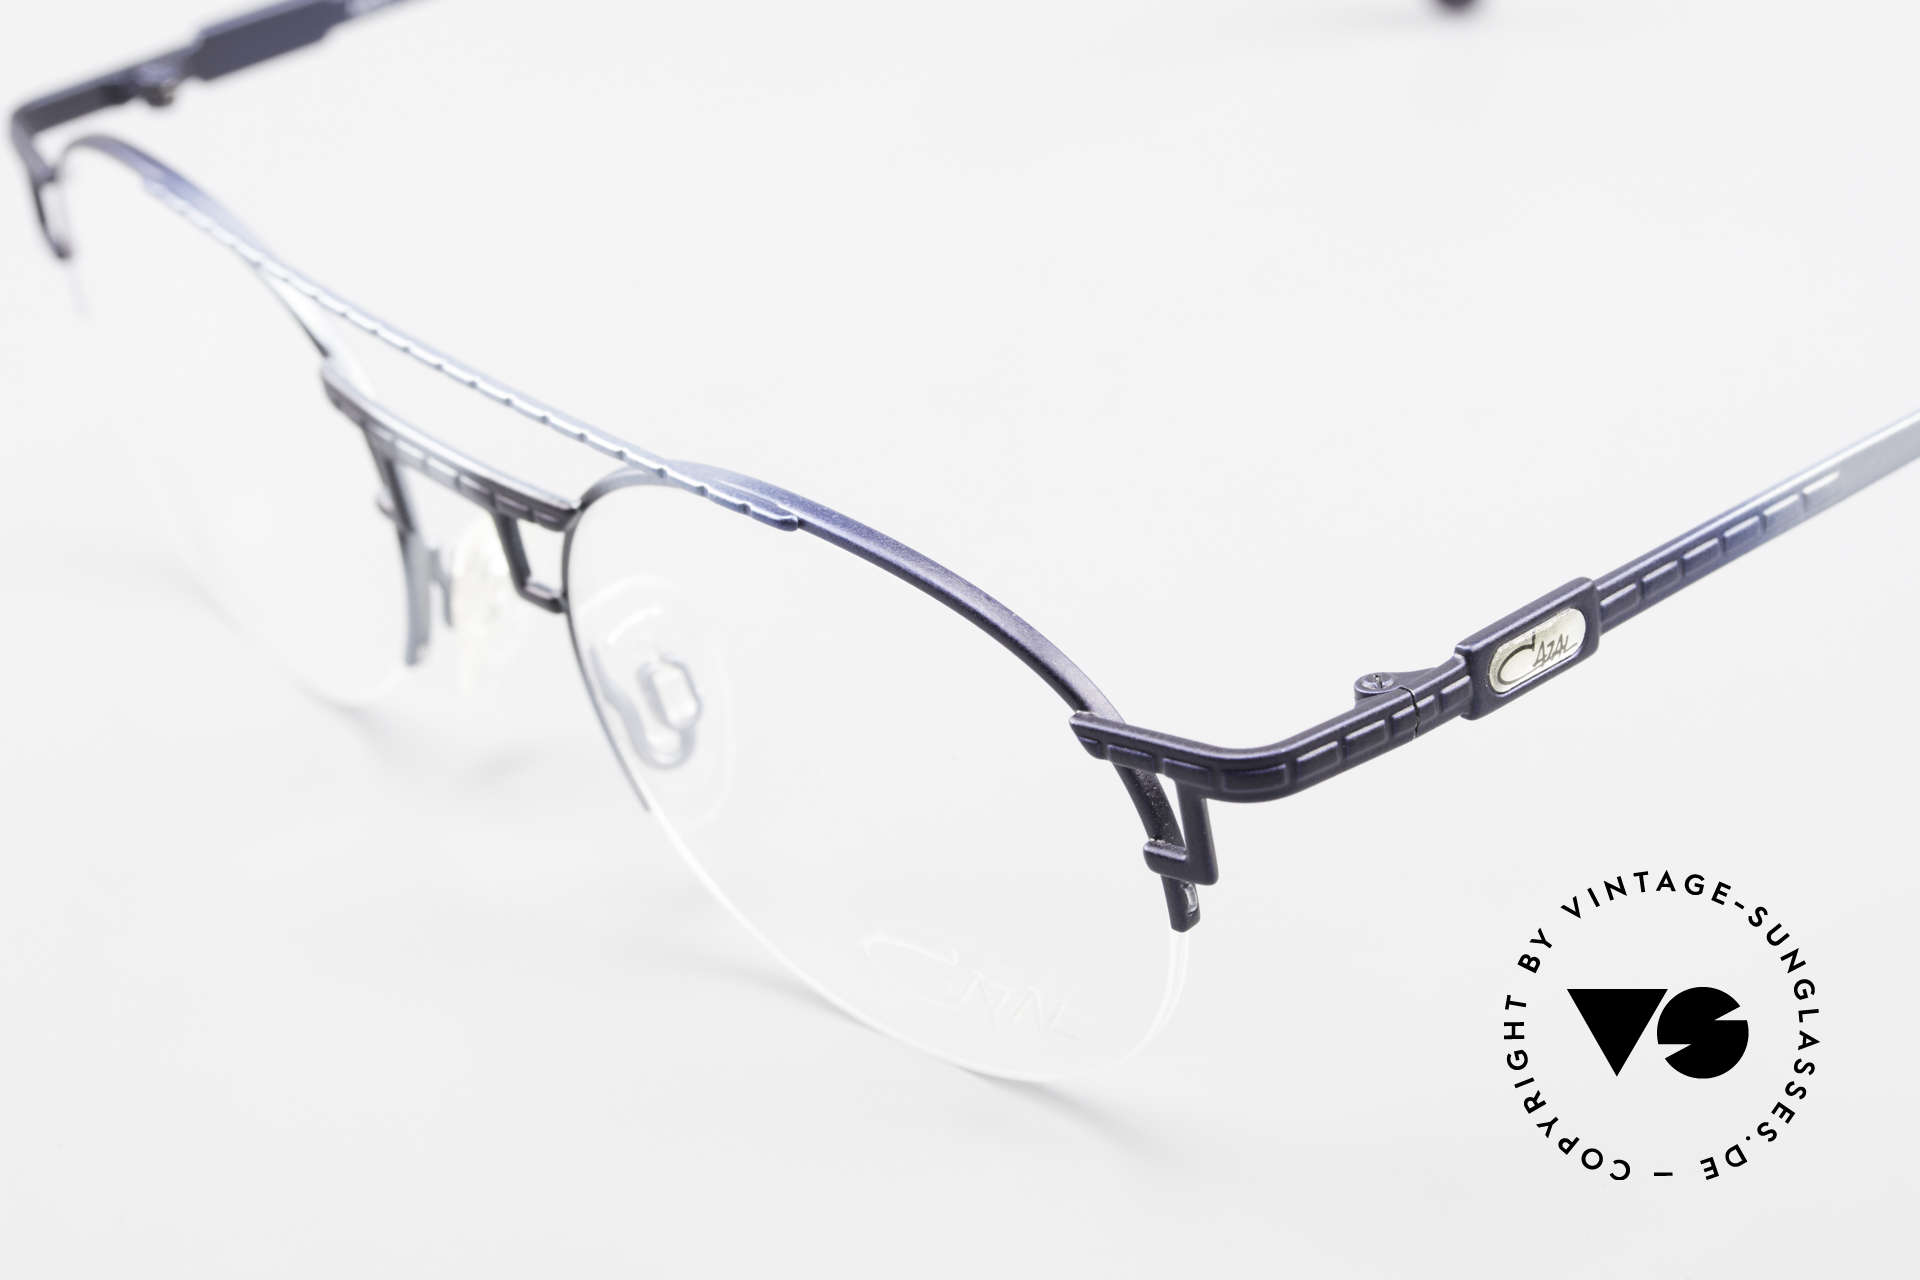 Cazal 764 True Vintage 90's Cazal Specs, semi-rimless frame and very pleasant to wear, Made for Men